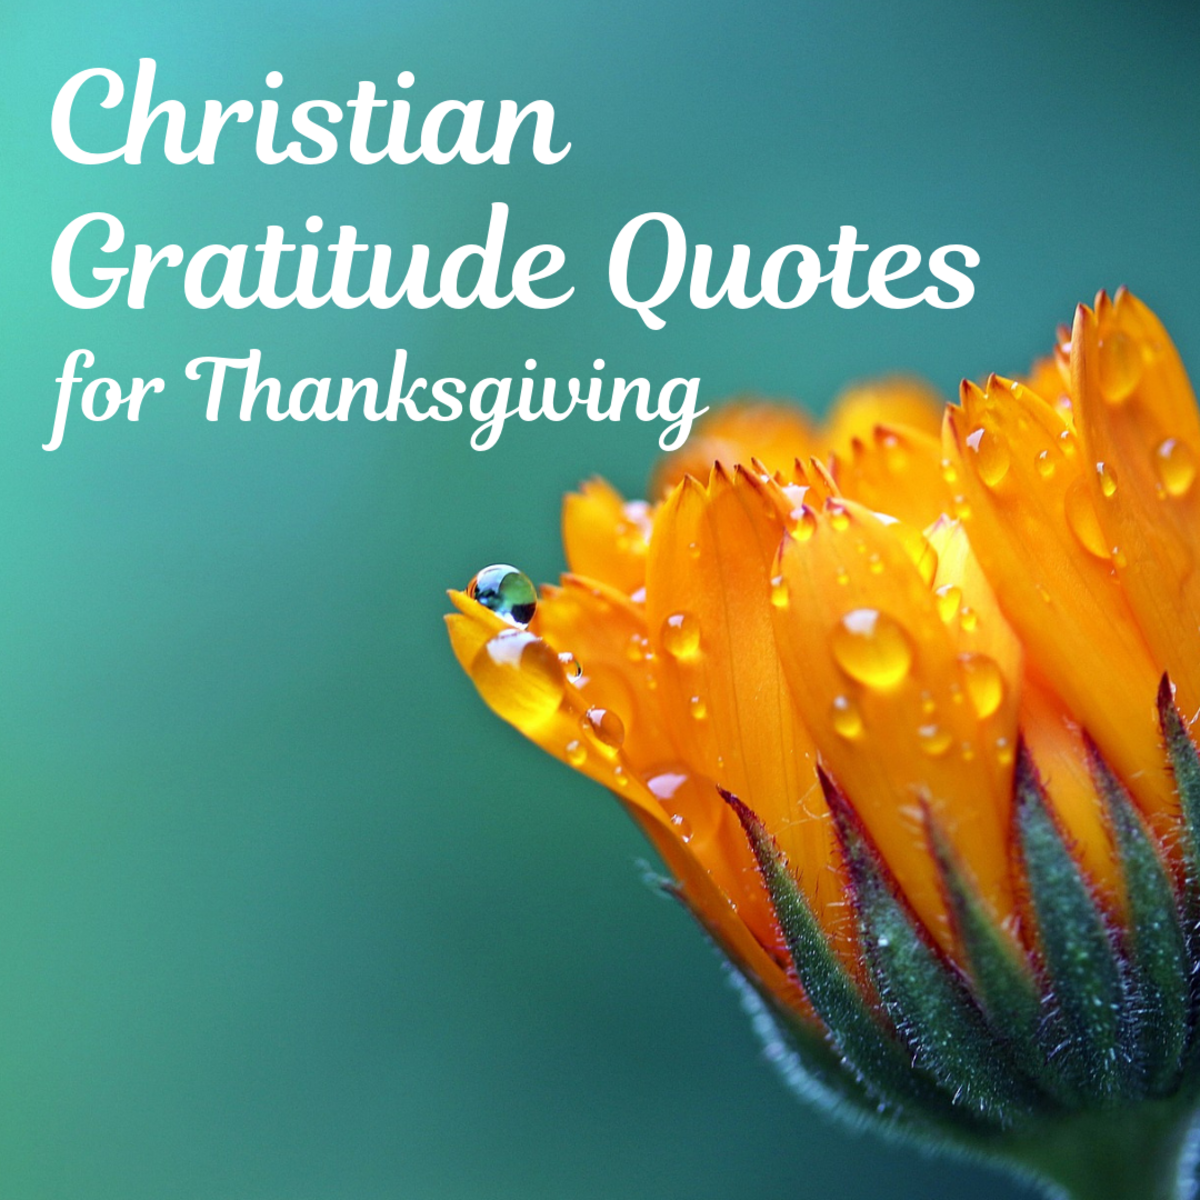 Read some unique quotes about thanksgiving and gratitude from old newspaper archives.